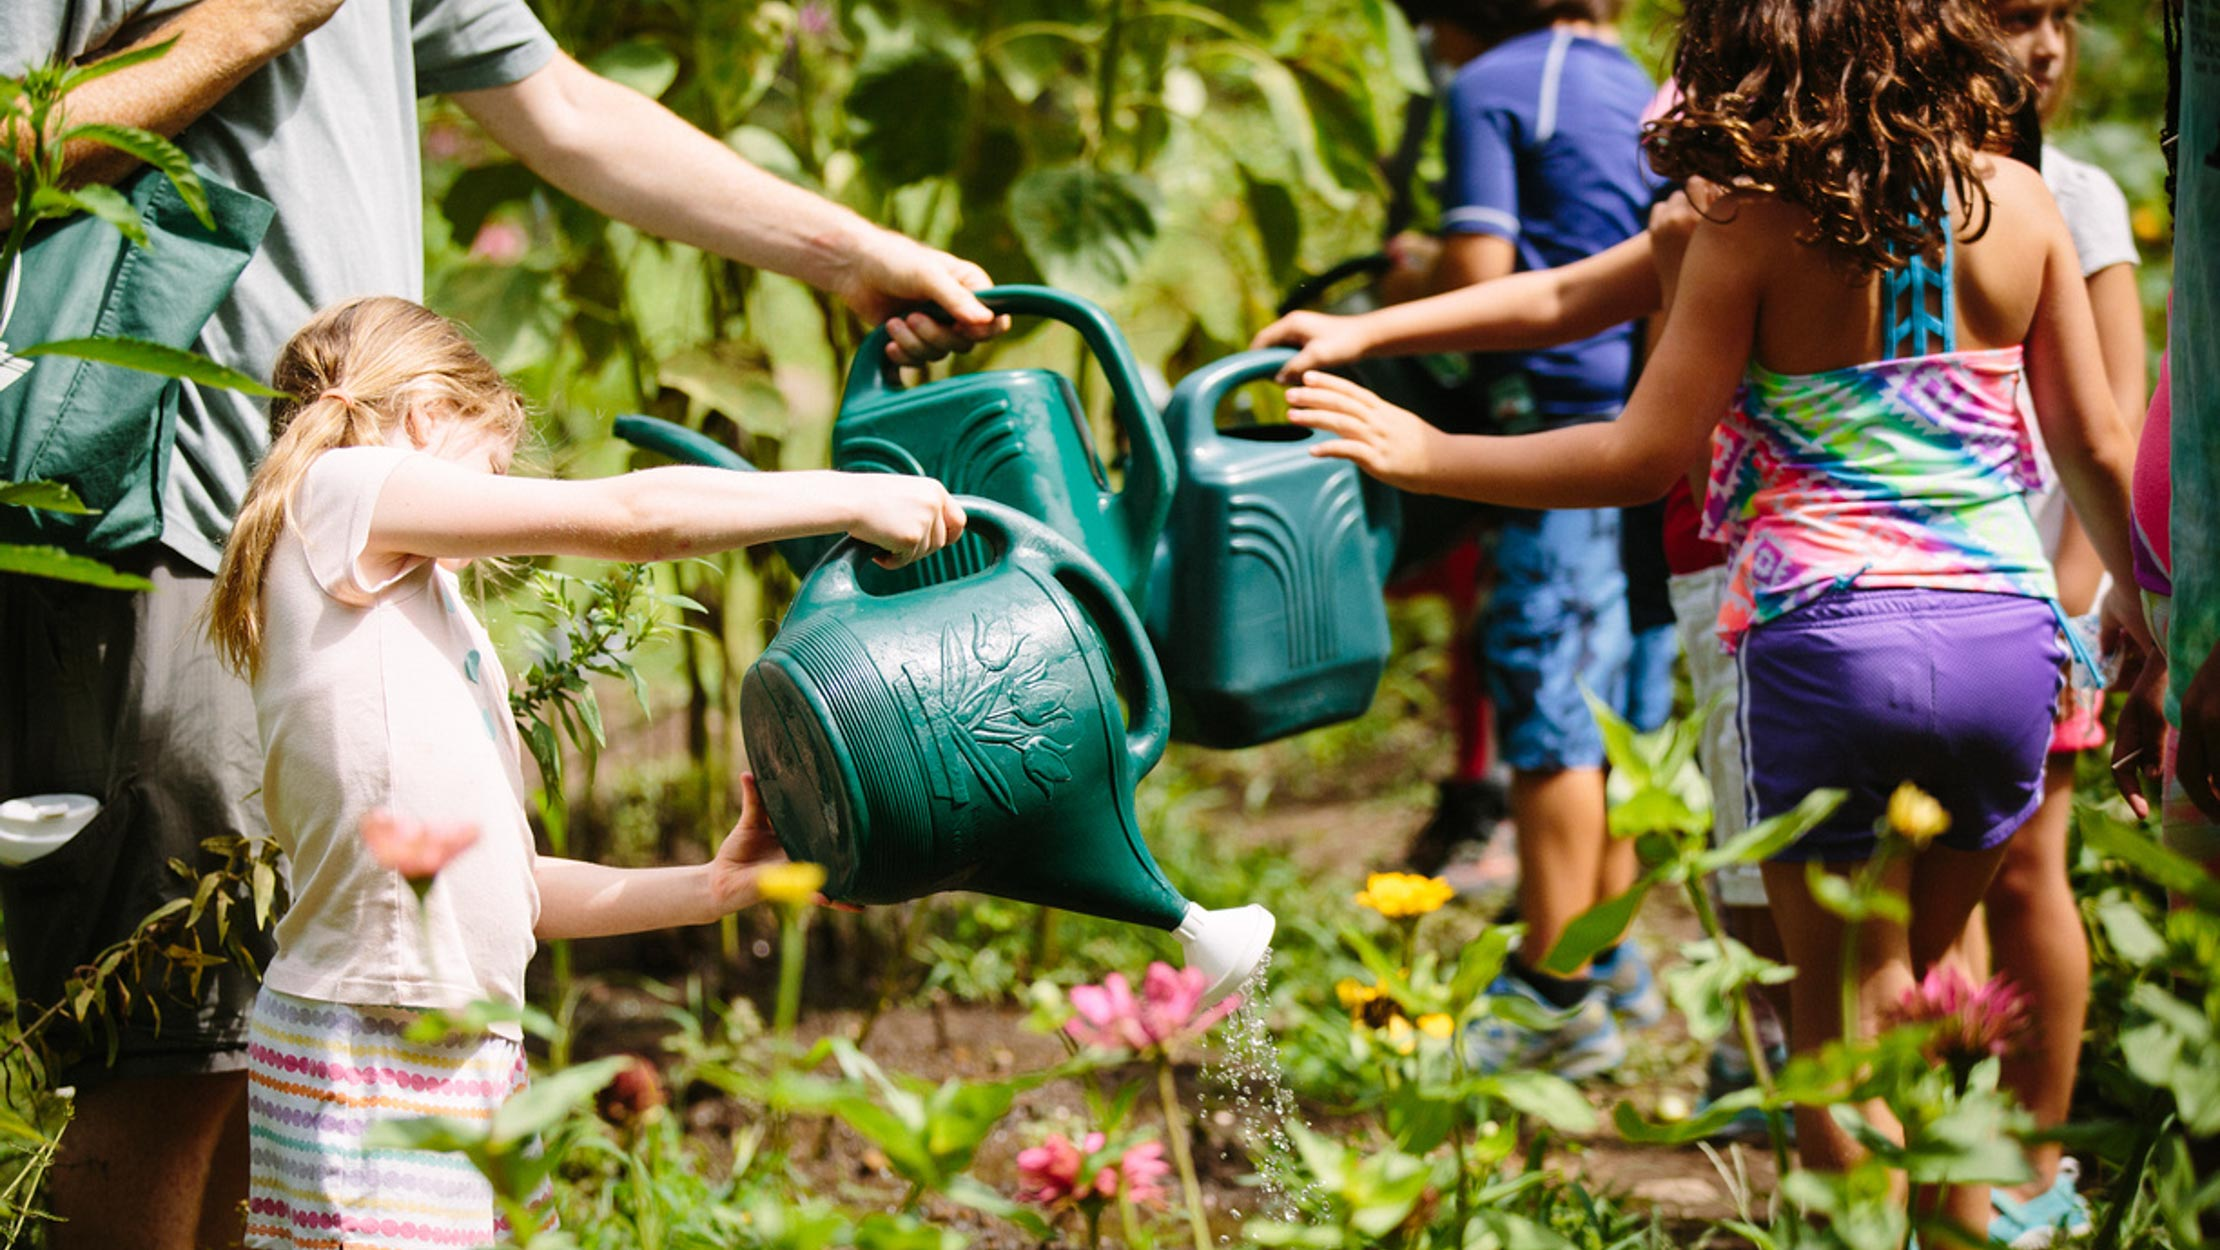 Campers watering the garden with watering cans